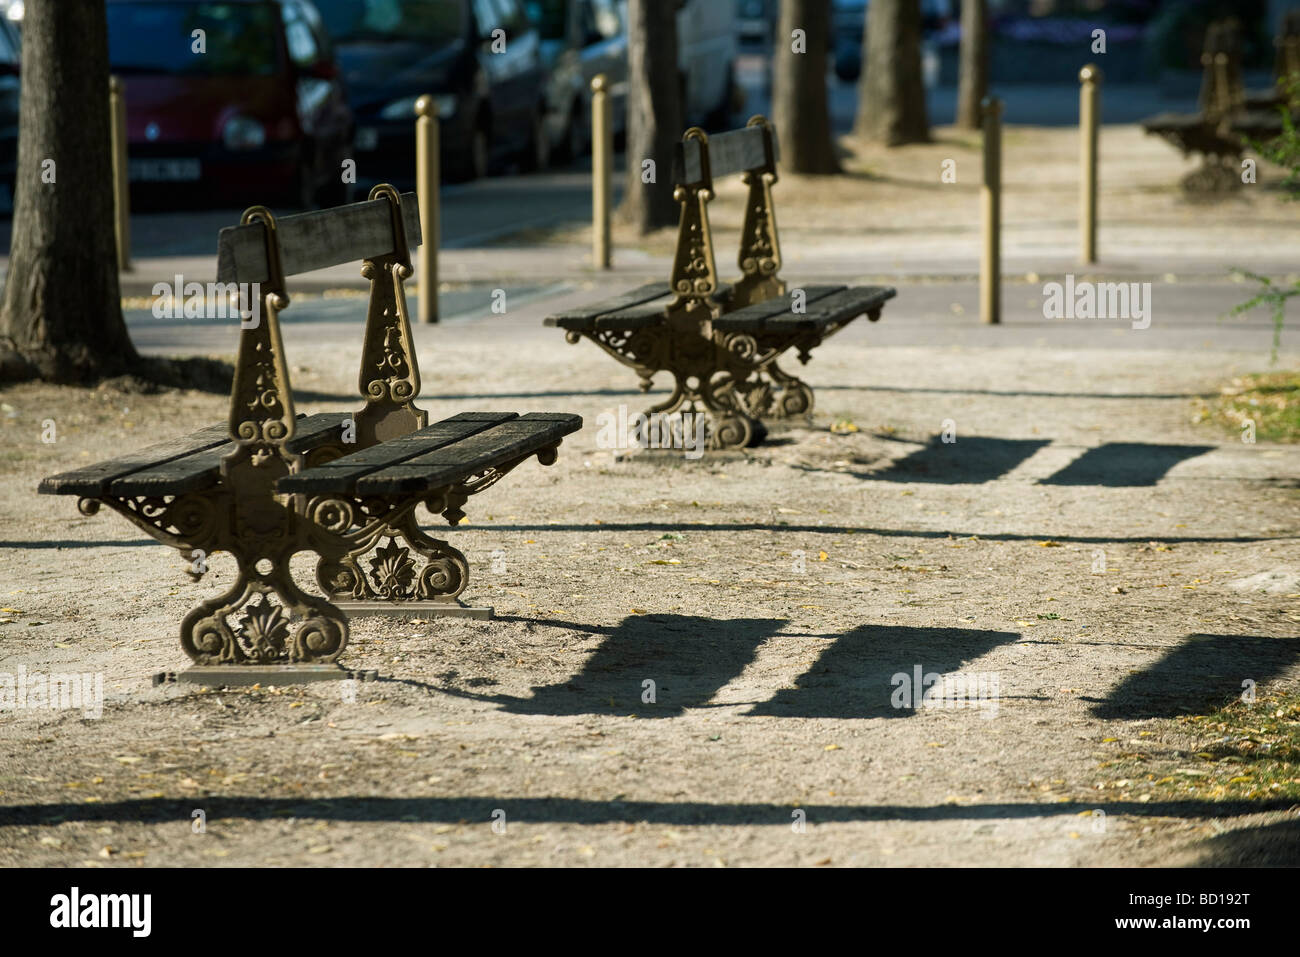 Ornate park benches casting shadows on ground Stock Photo